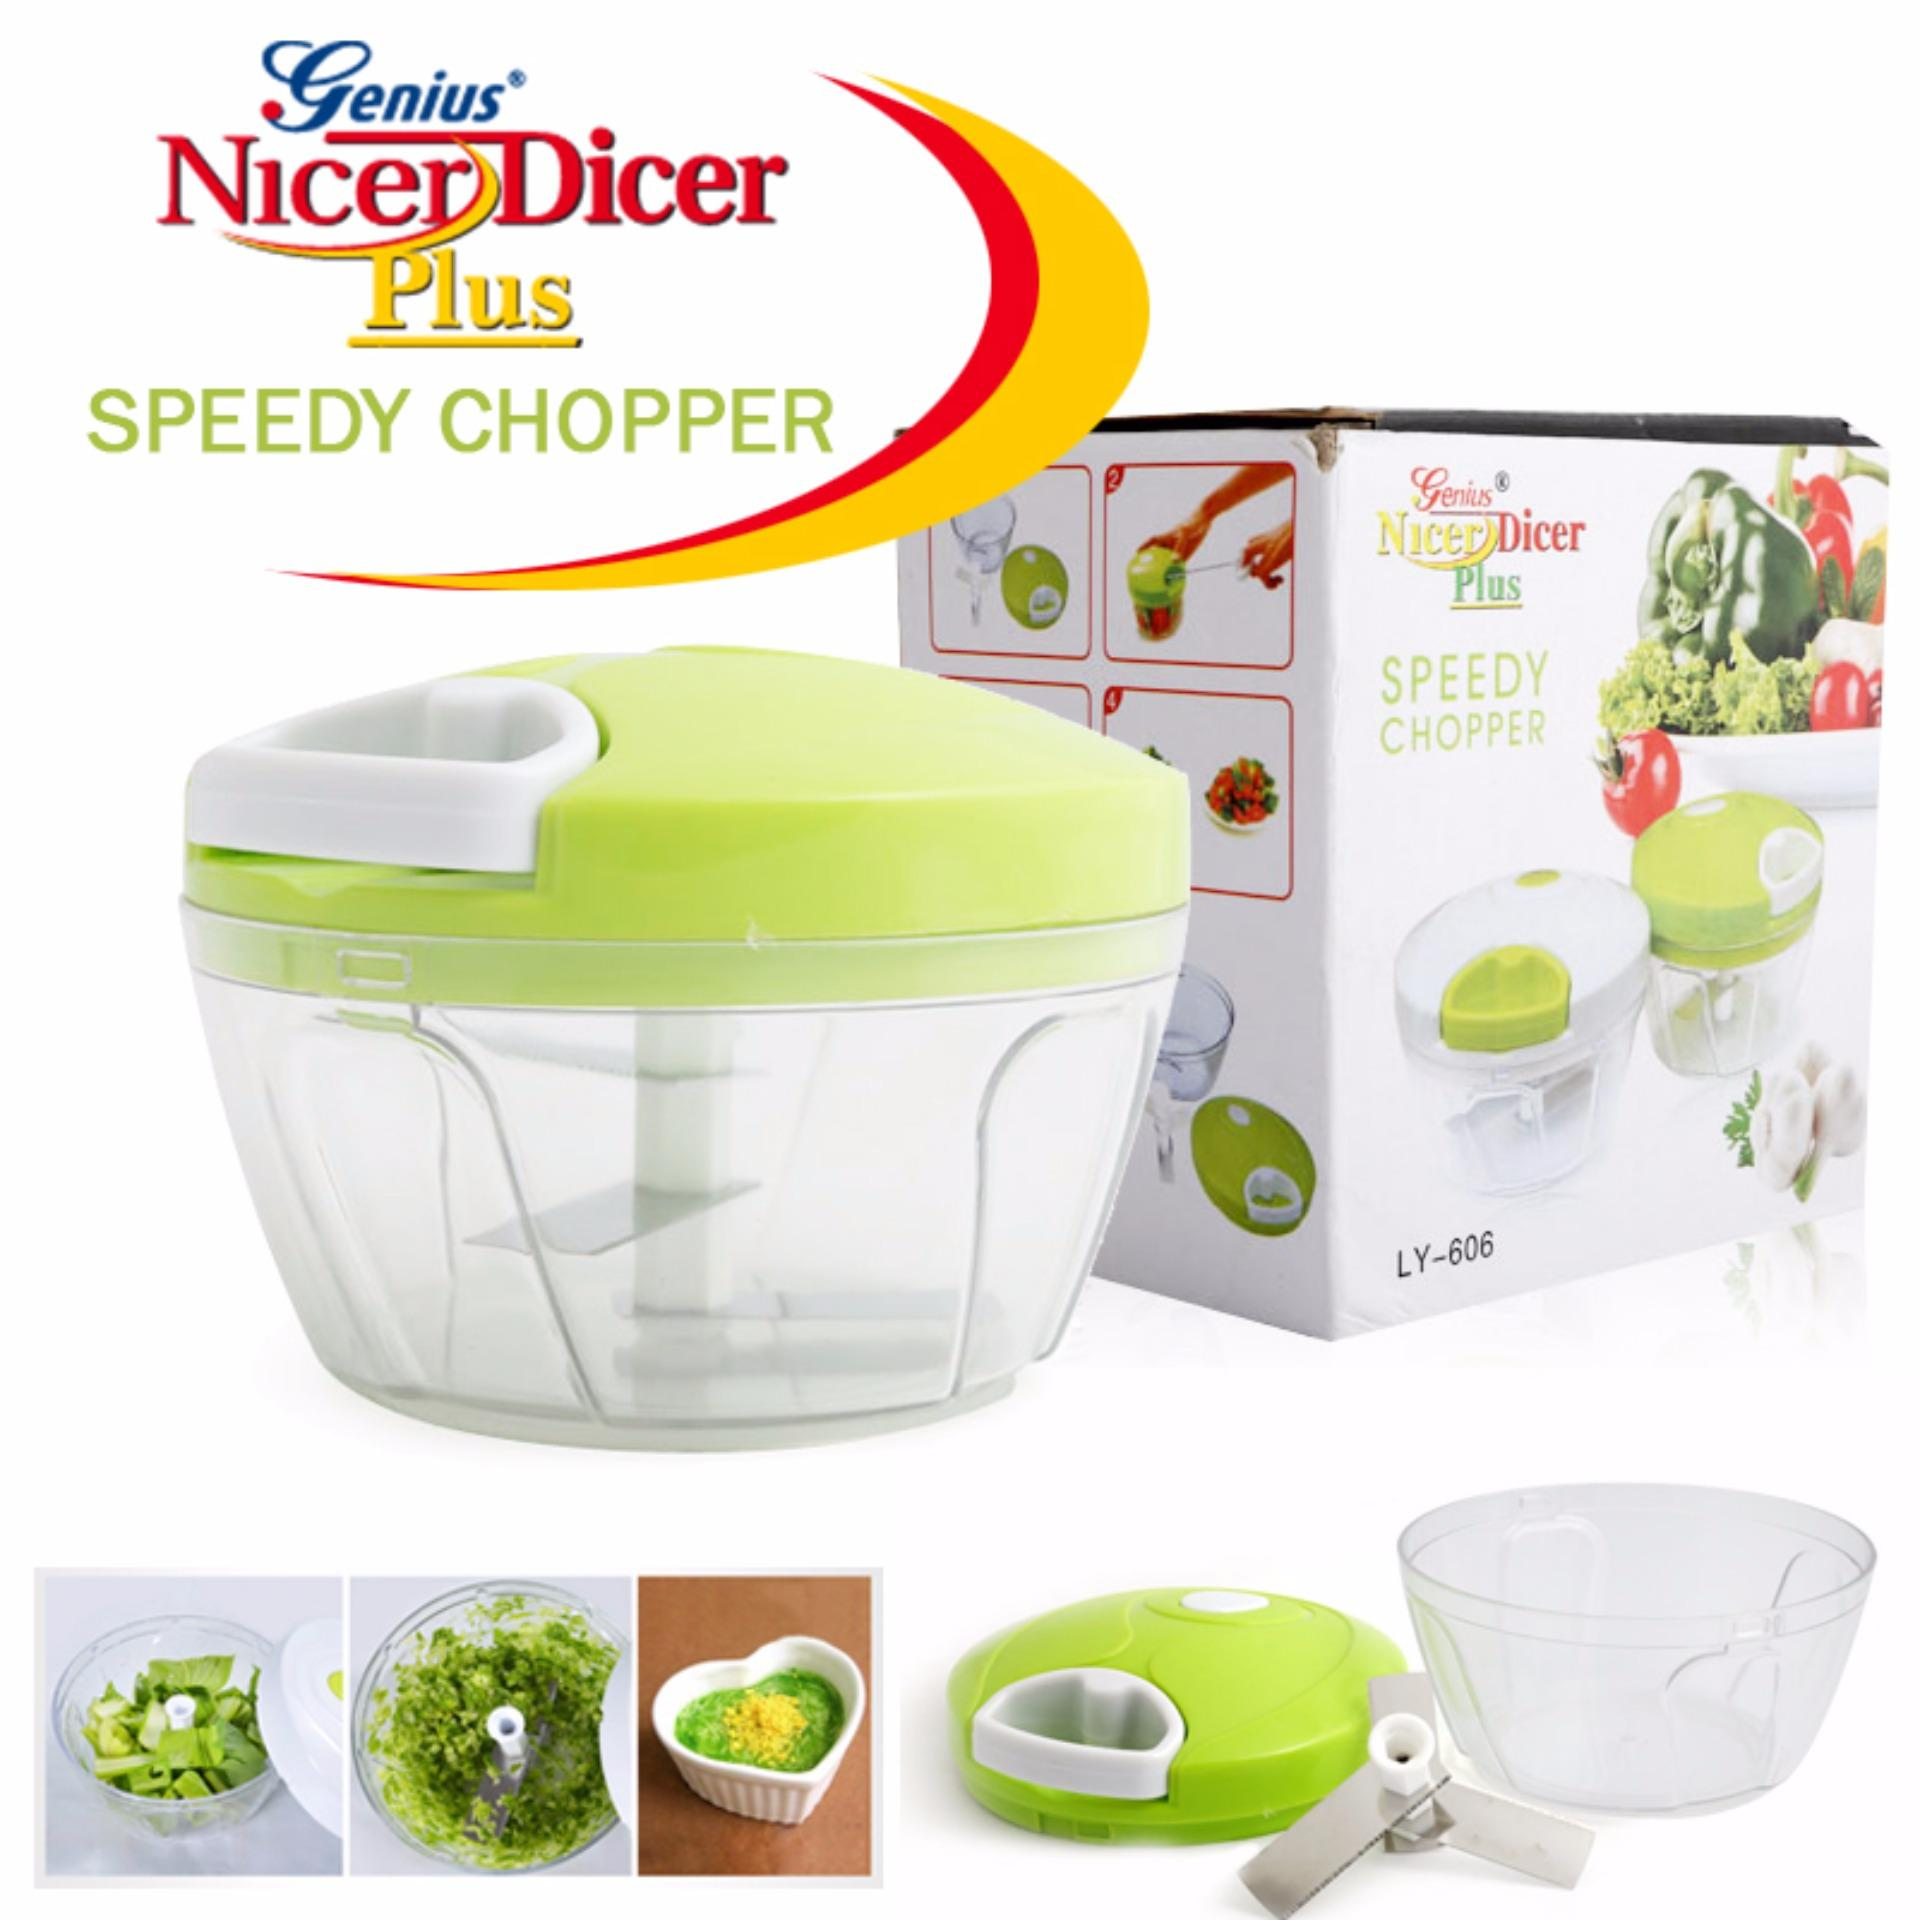 Dinnerware for sale - Kitchenware prices, brands & review in ...